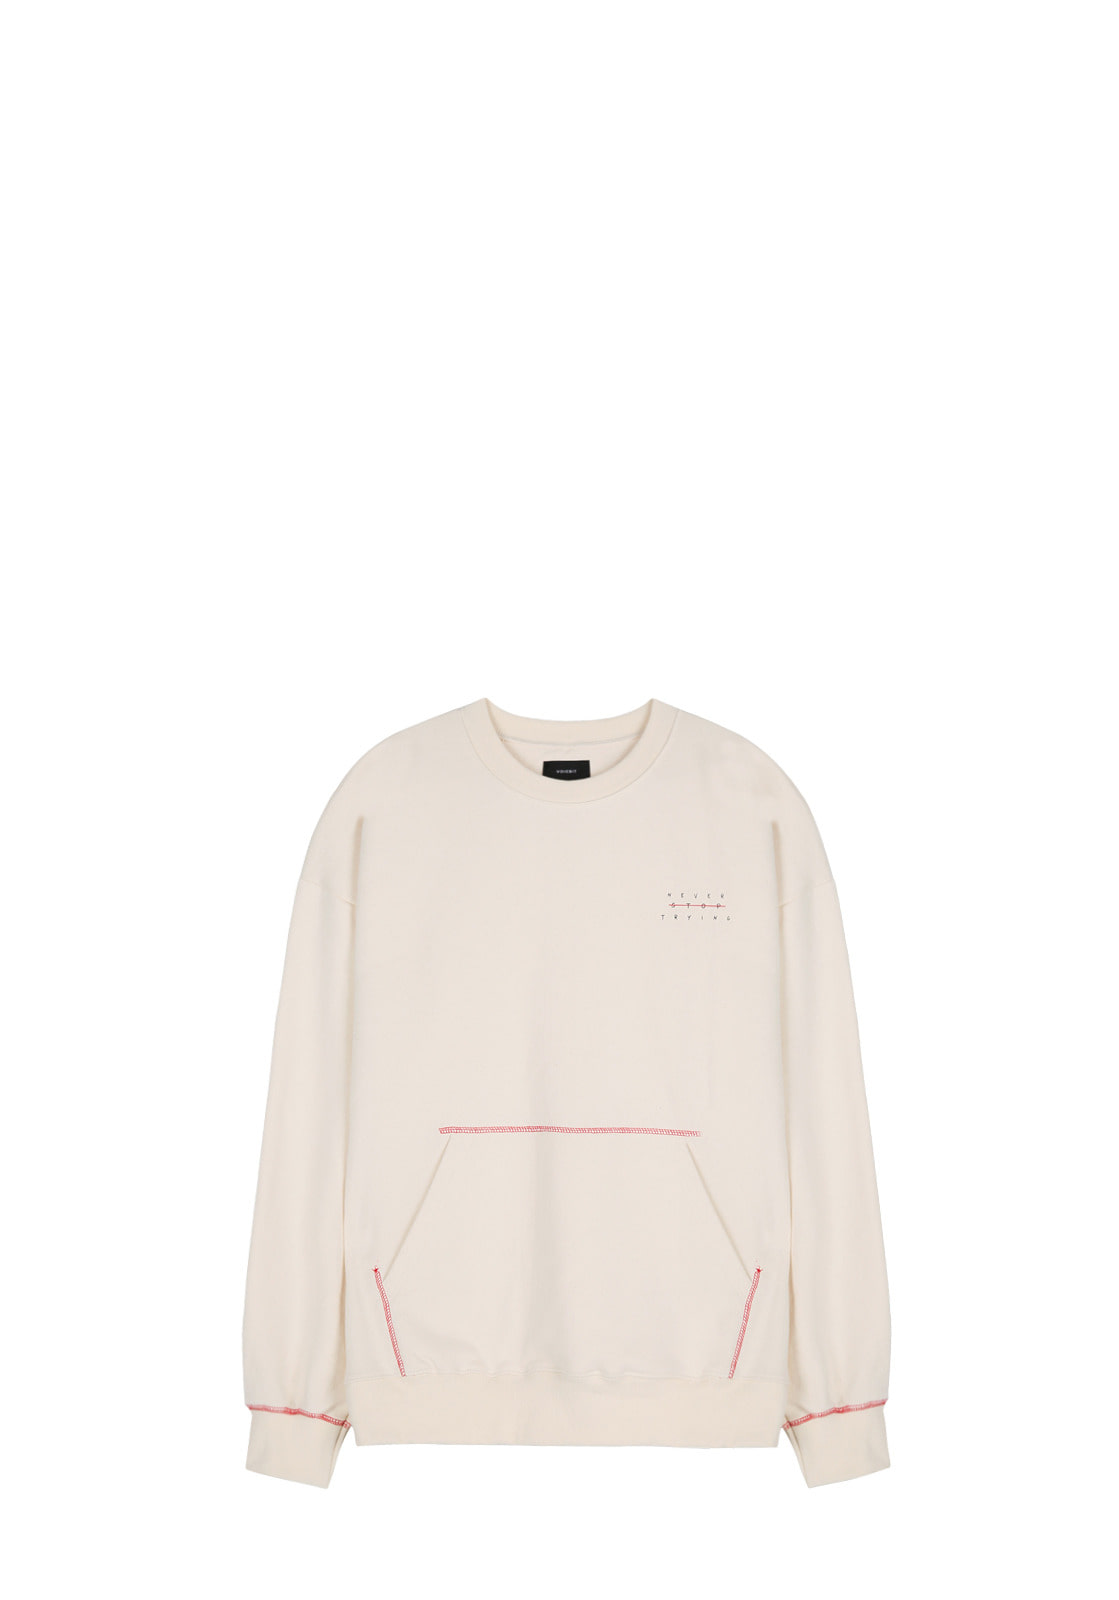 V342 POCKET STITCH SWEATSHIRT  IVORY